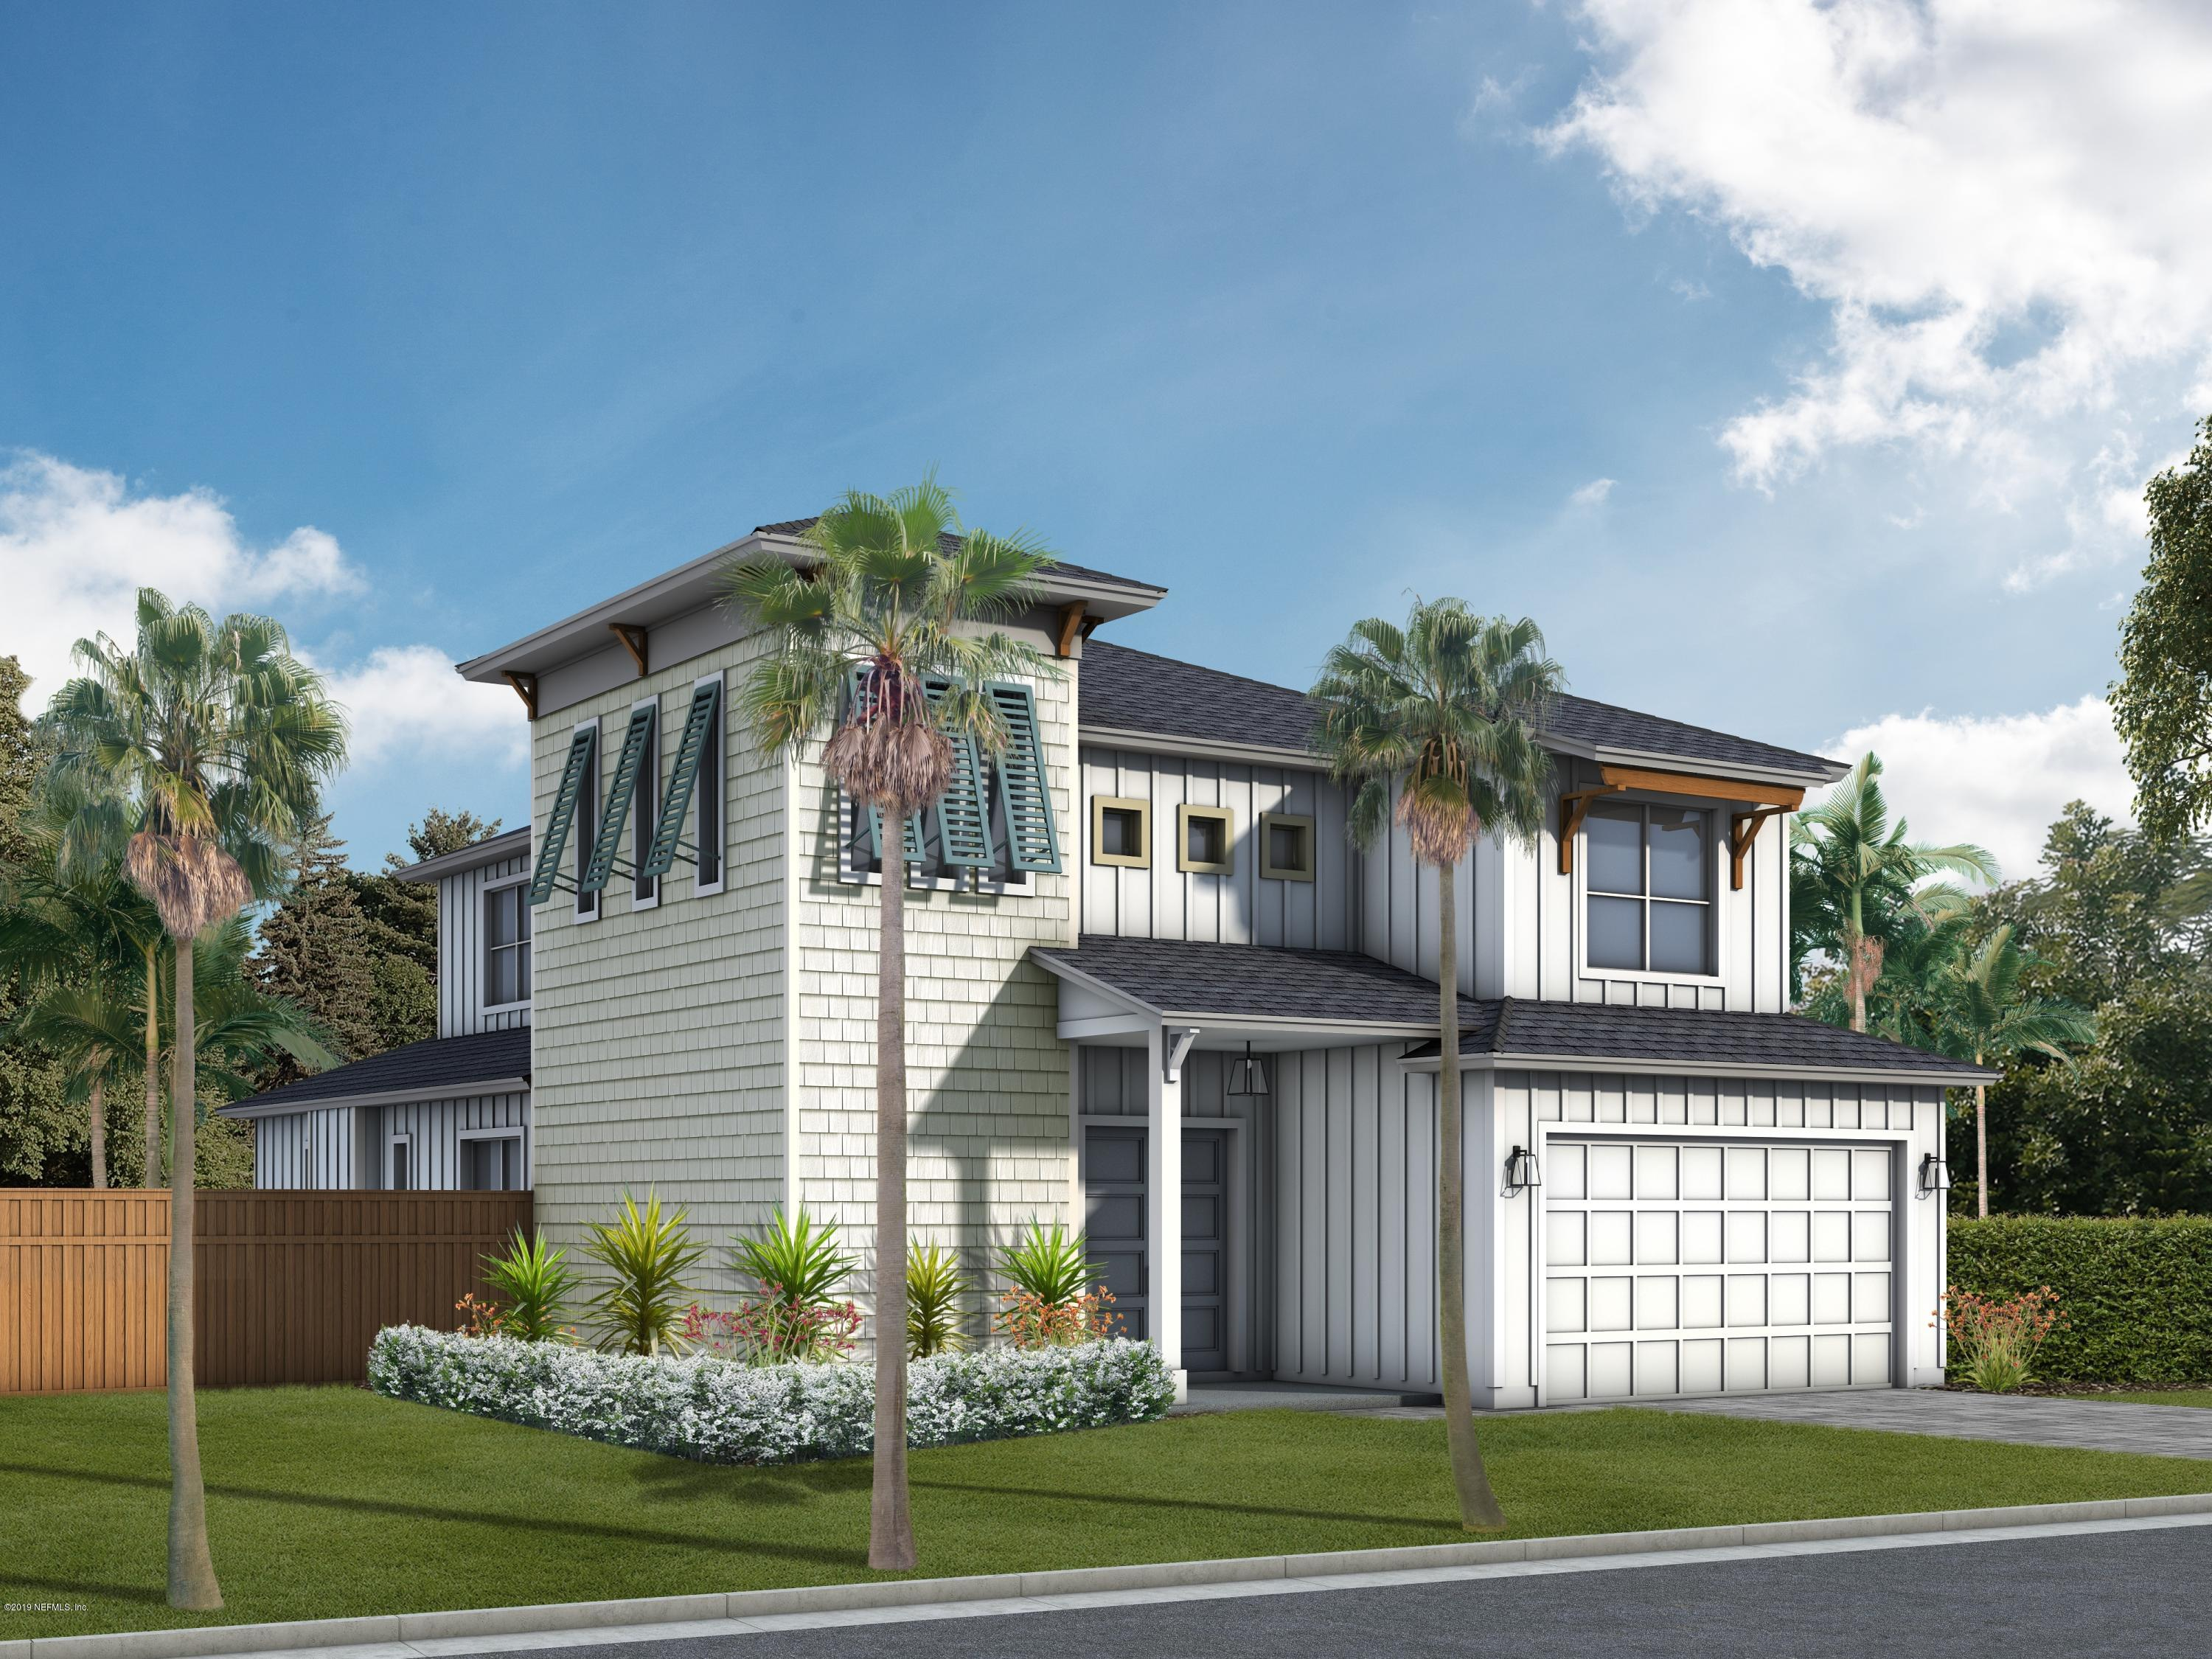 314 NORTH, NEPTUNE BEACH, FLORIDA 32266, 4 Bedrooms Bedrooms, ,3 BathroomsBathrooms,Residential - single family,For sale,NORTH,980054